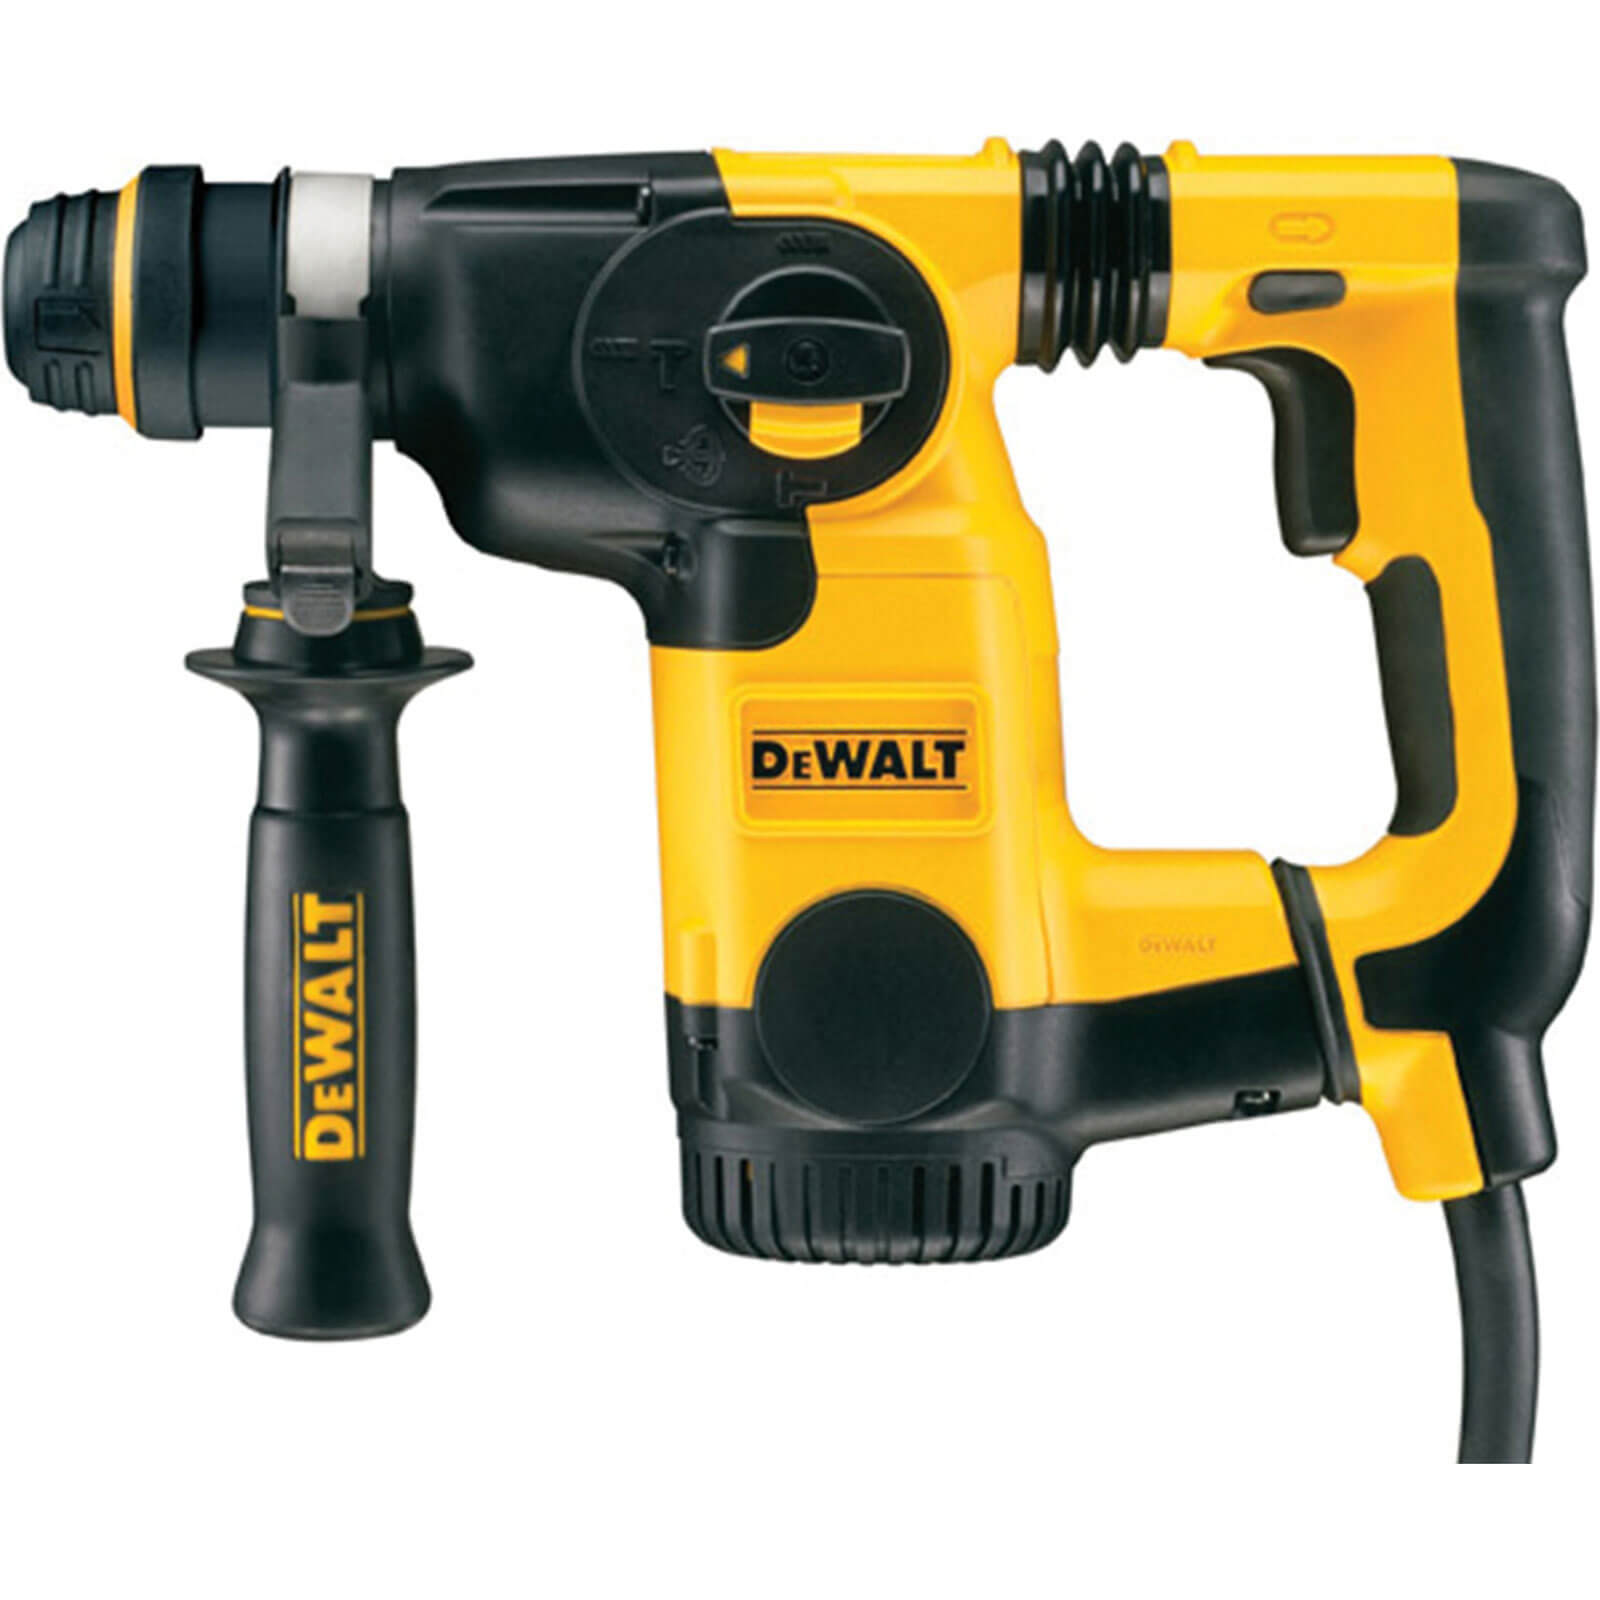 DeWalt D25323K Low Vibration SDS Plus Hammer Drill 3 Mode 800w 240v